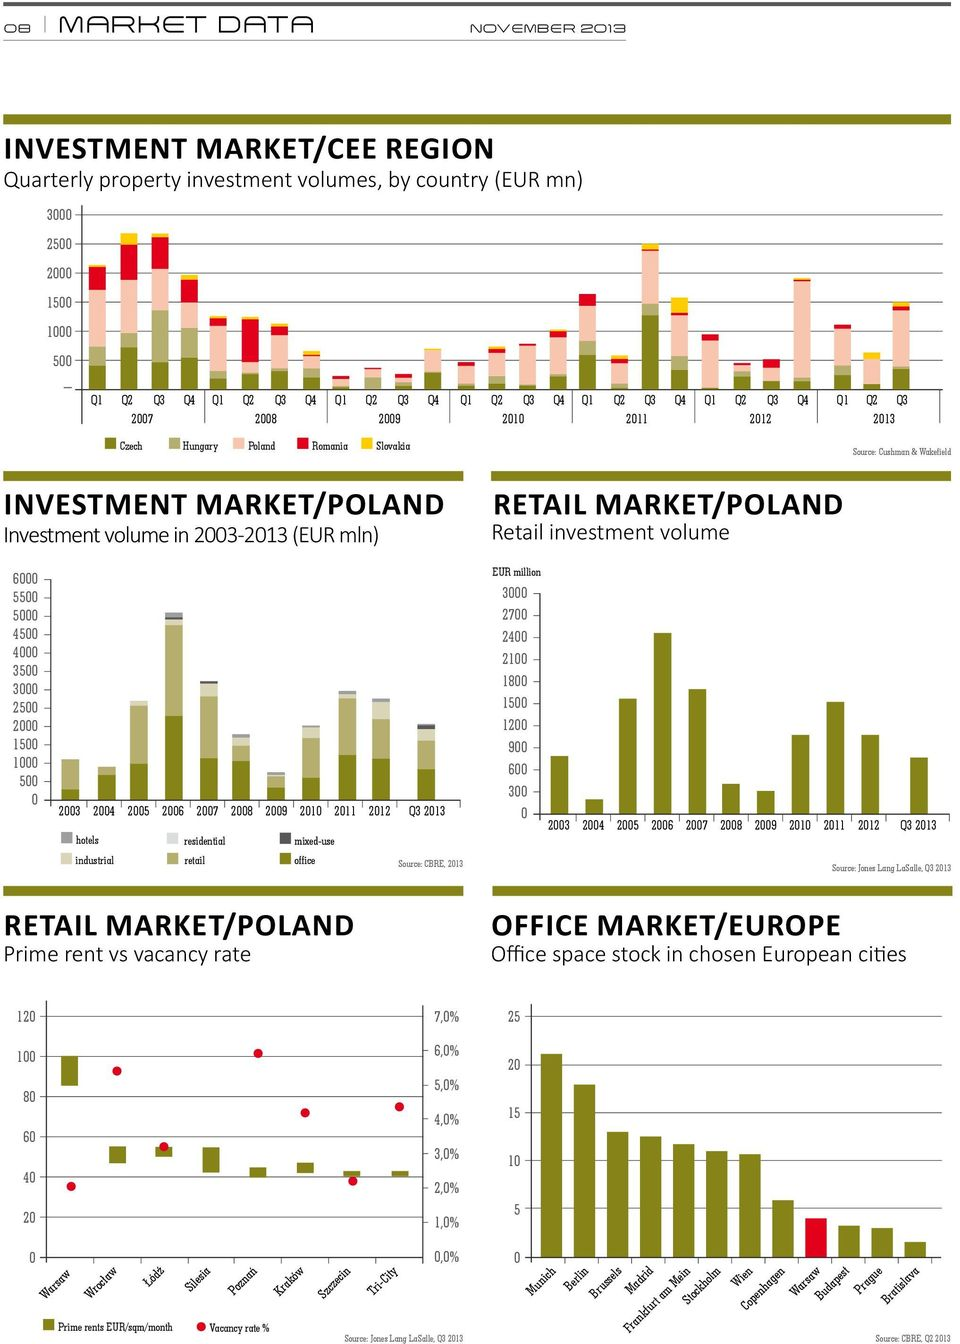 RETAIL MARKET/POLAND Retail investment volume 6000 5500 5000 4500 4000 3500 3000 2500 2000 1500 1000 500 0 EUR million 3000 2700 2400 2100 1800 1500 1200 900 600 300 2003 2004 2005 2006 2007 2008